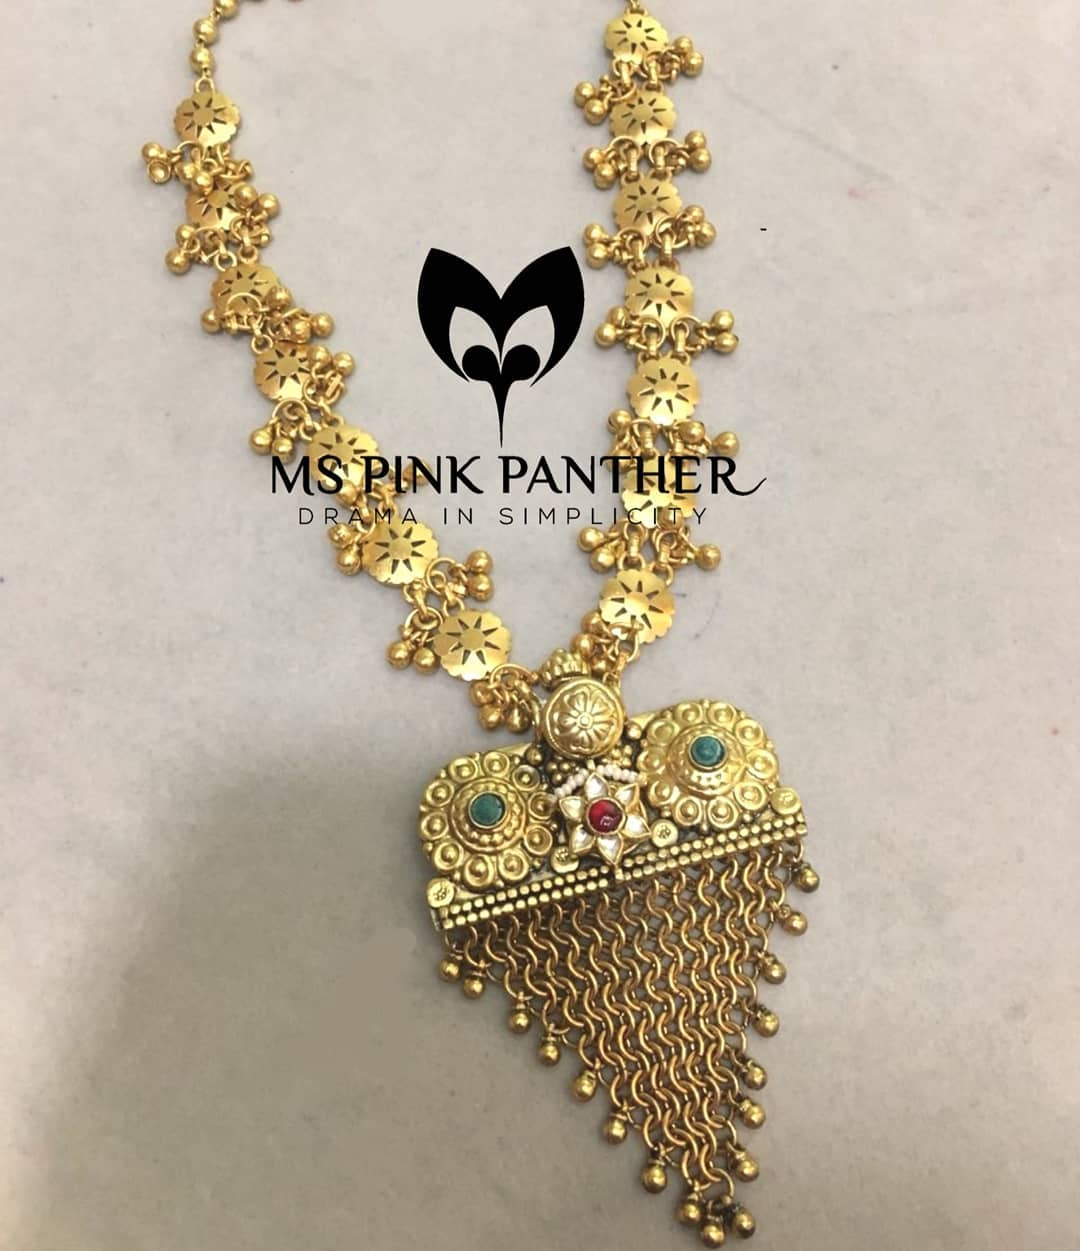 Beautiful Long Necklace From Ms Pink Panthers